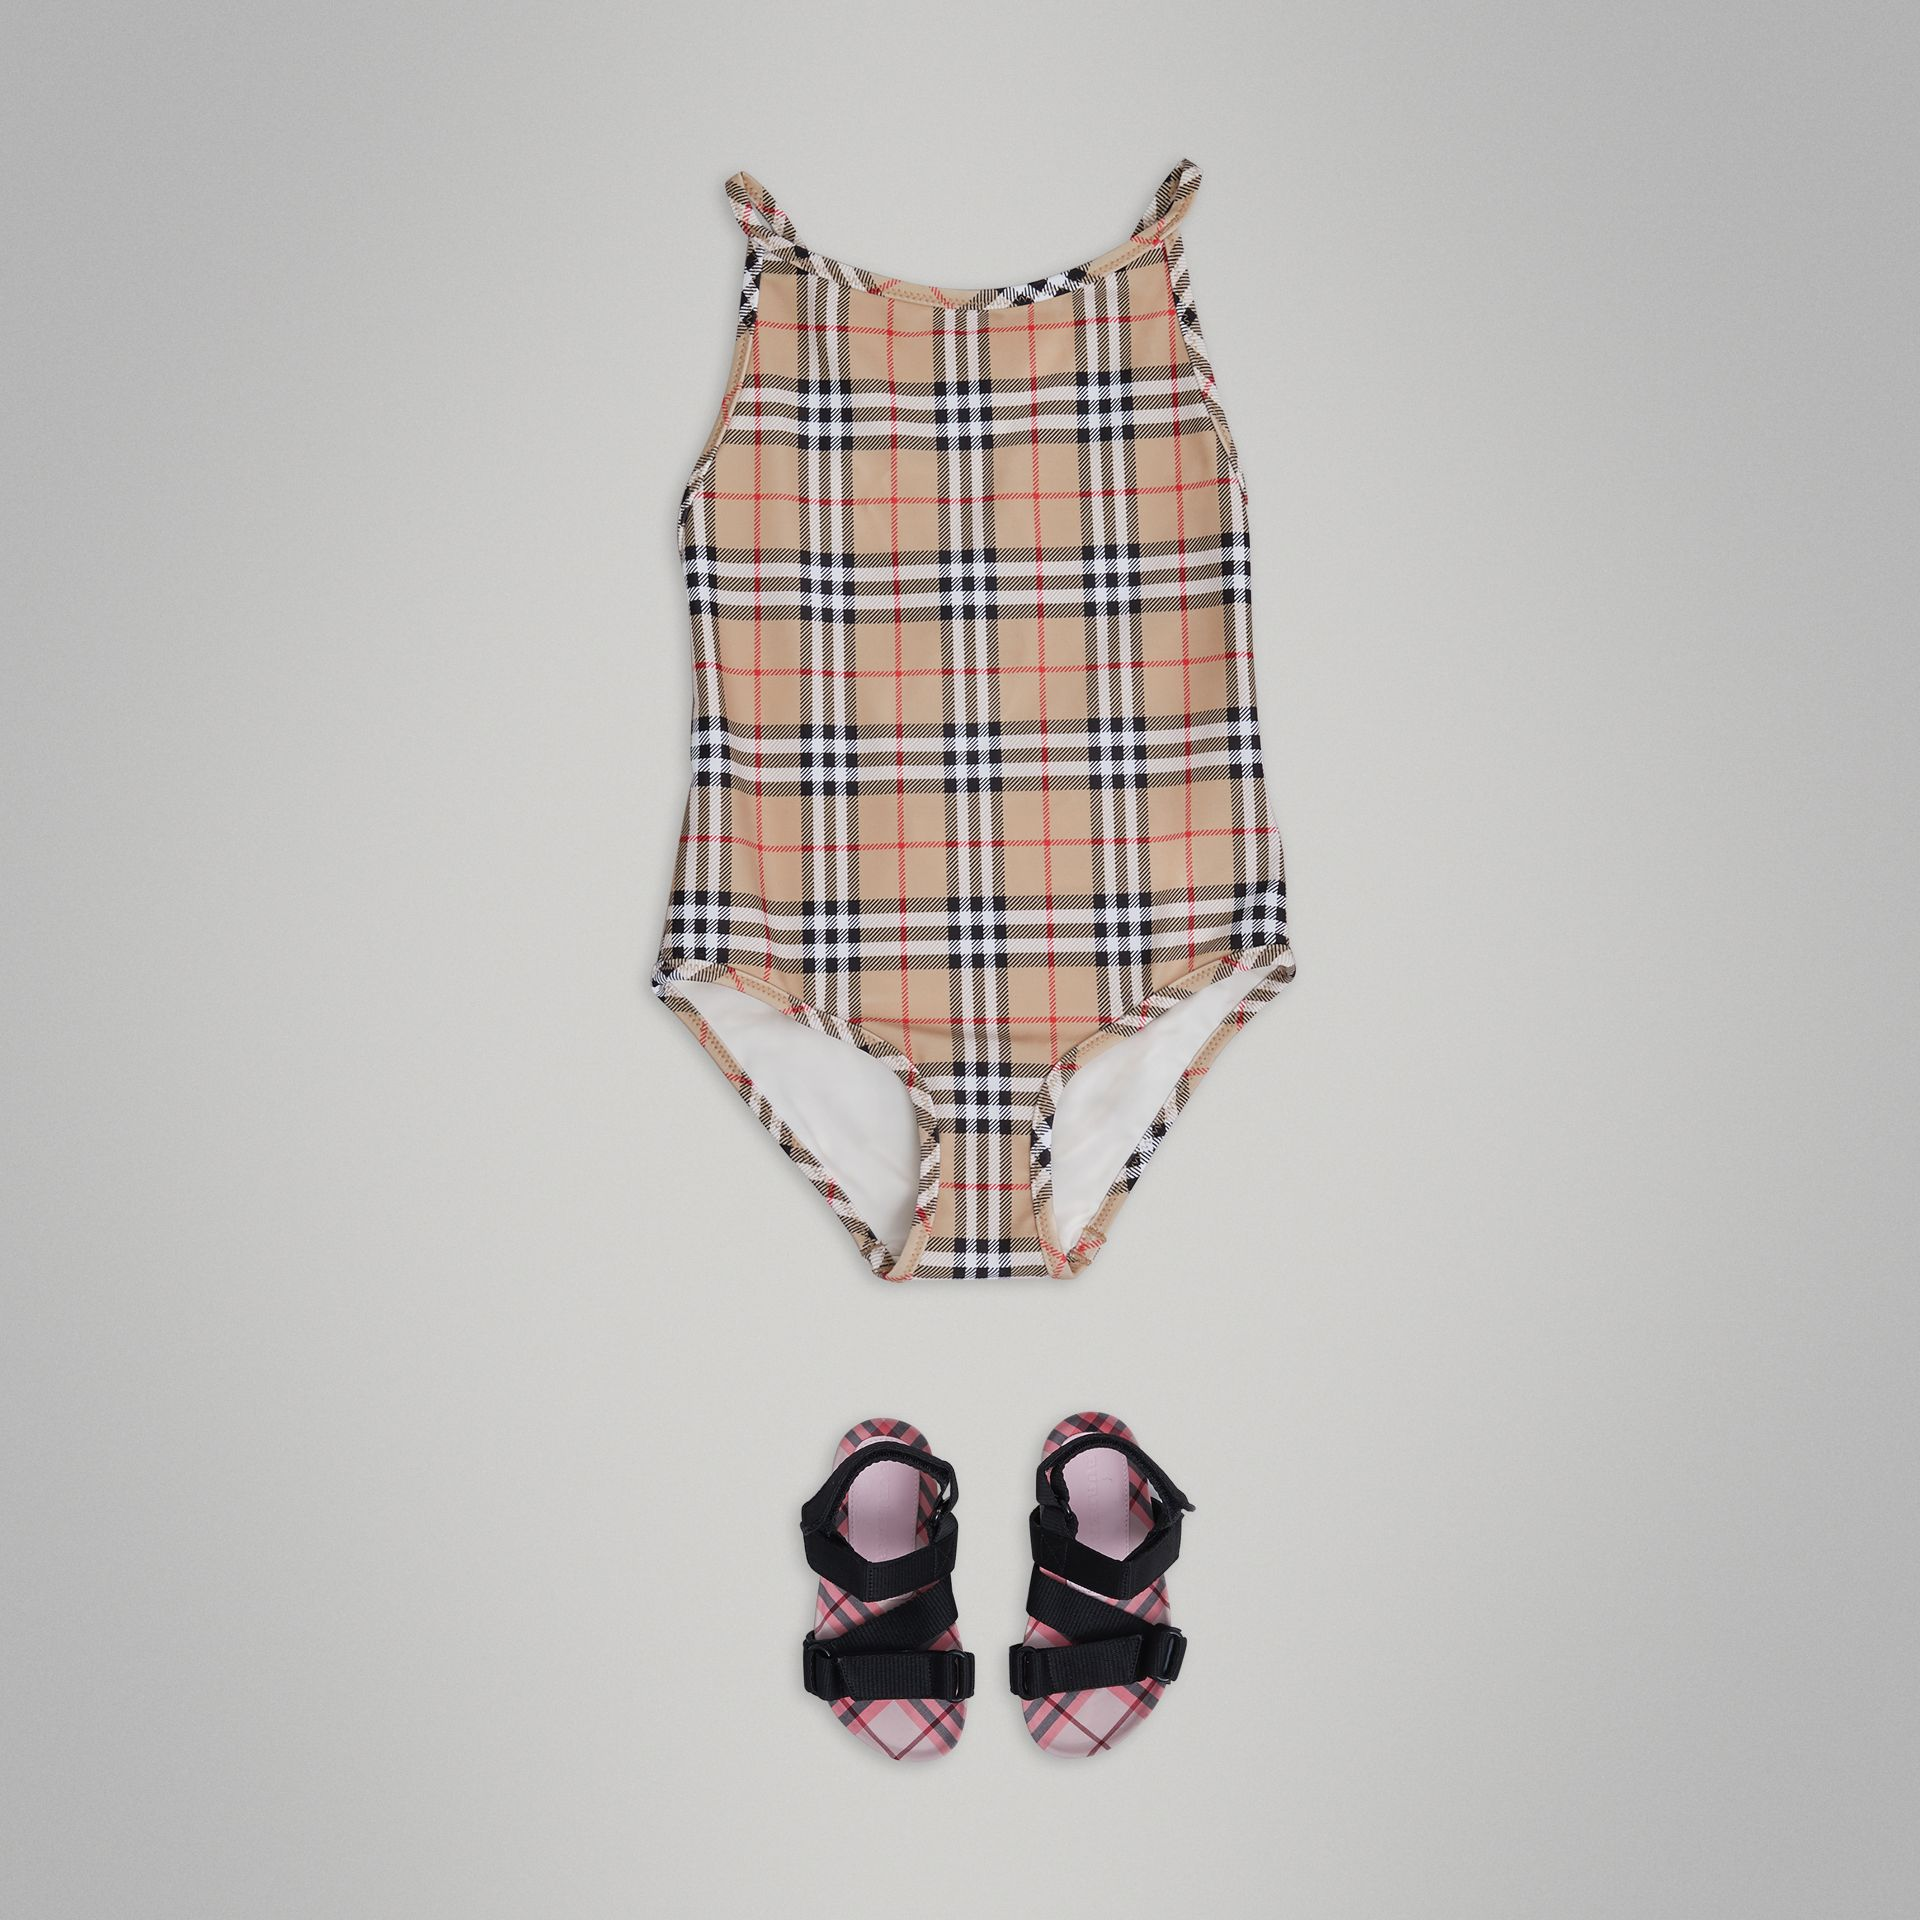 Vintage Check One-piece Swimsuit in Camel | Burberry - gallery image 2